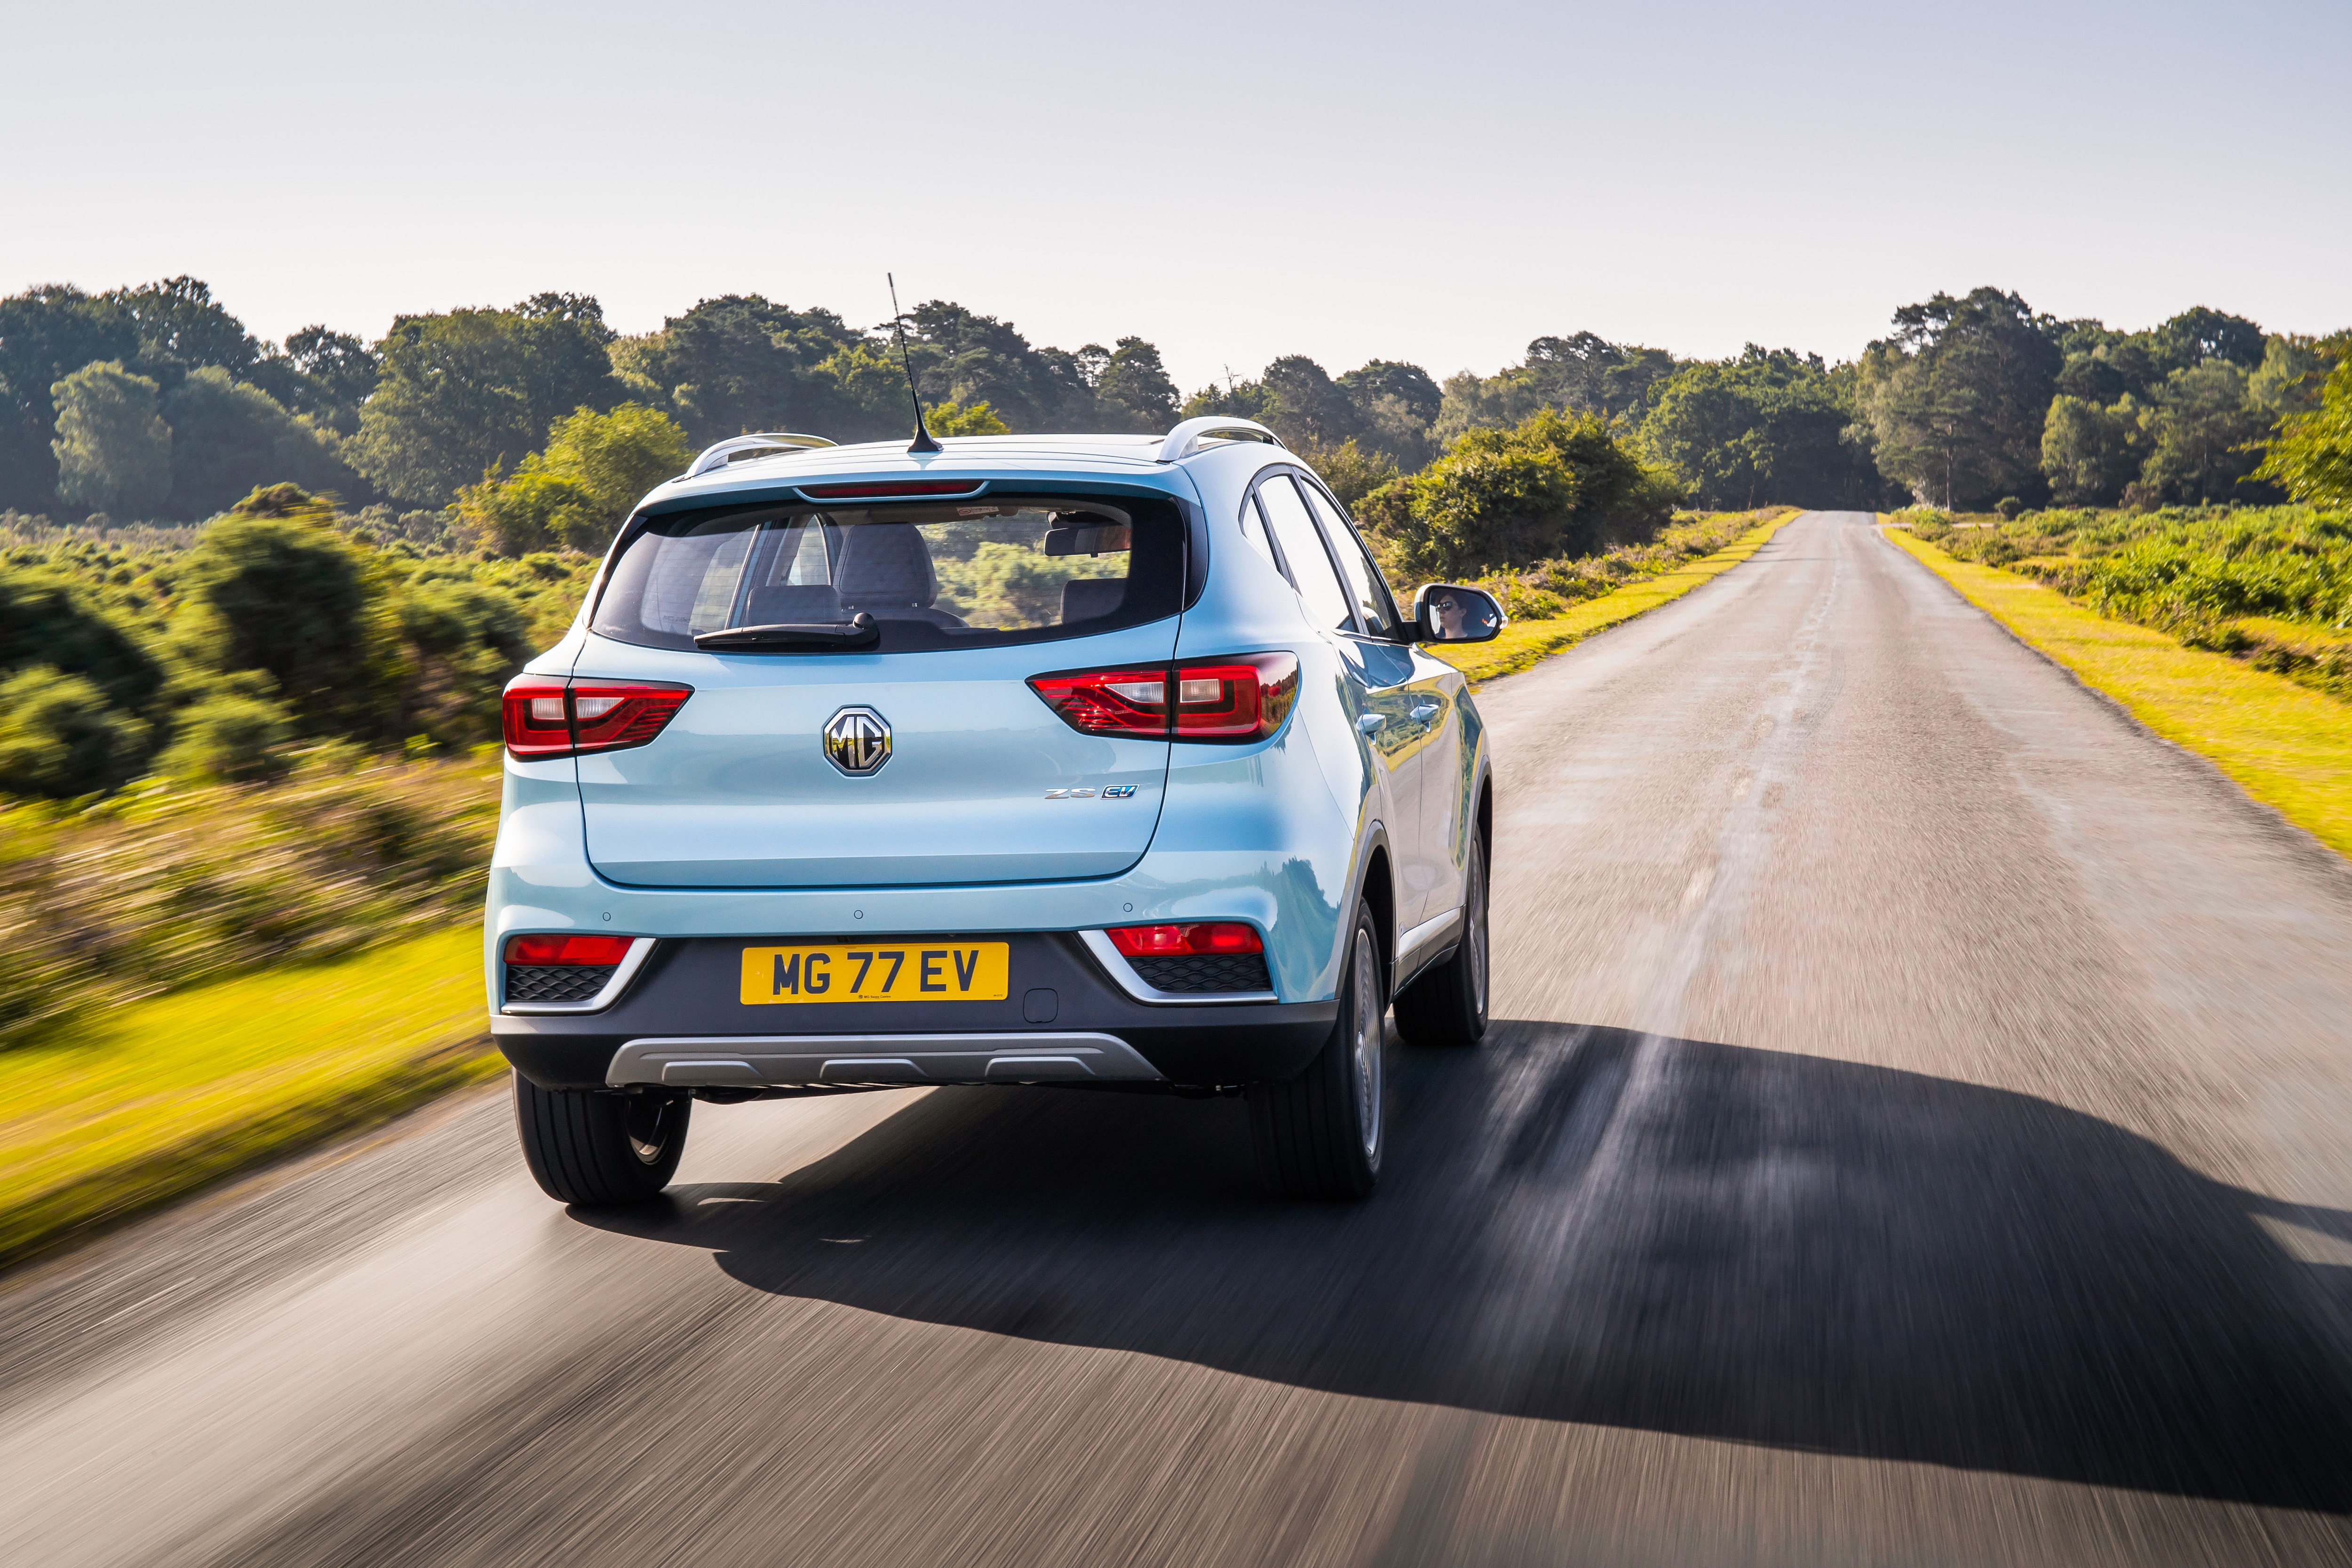 The 45.2 kWh battery can give the SUV a stated range of 428 kms, around 30 kms less than its rival Kona. (Photo courtesy: mg.co.uk)